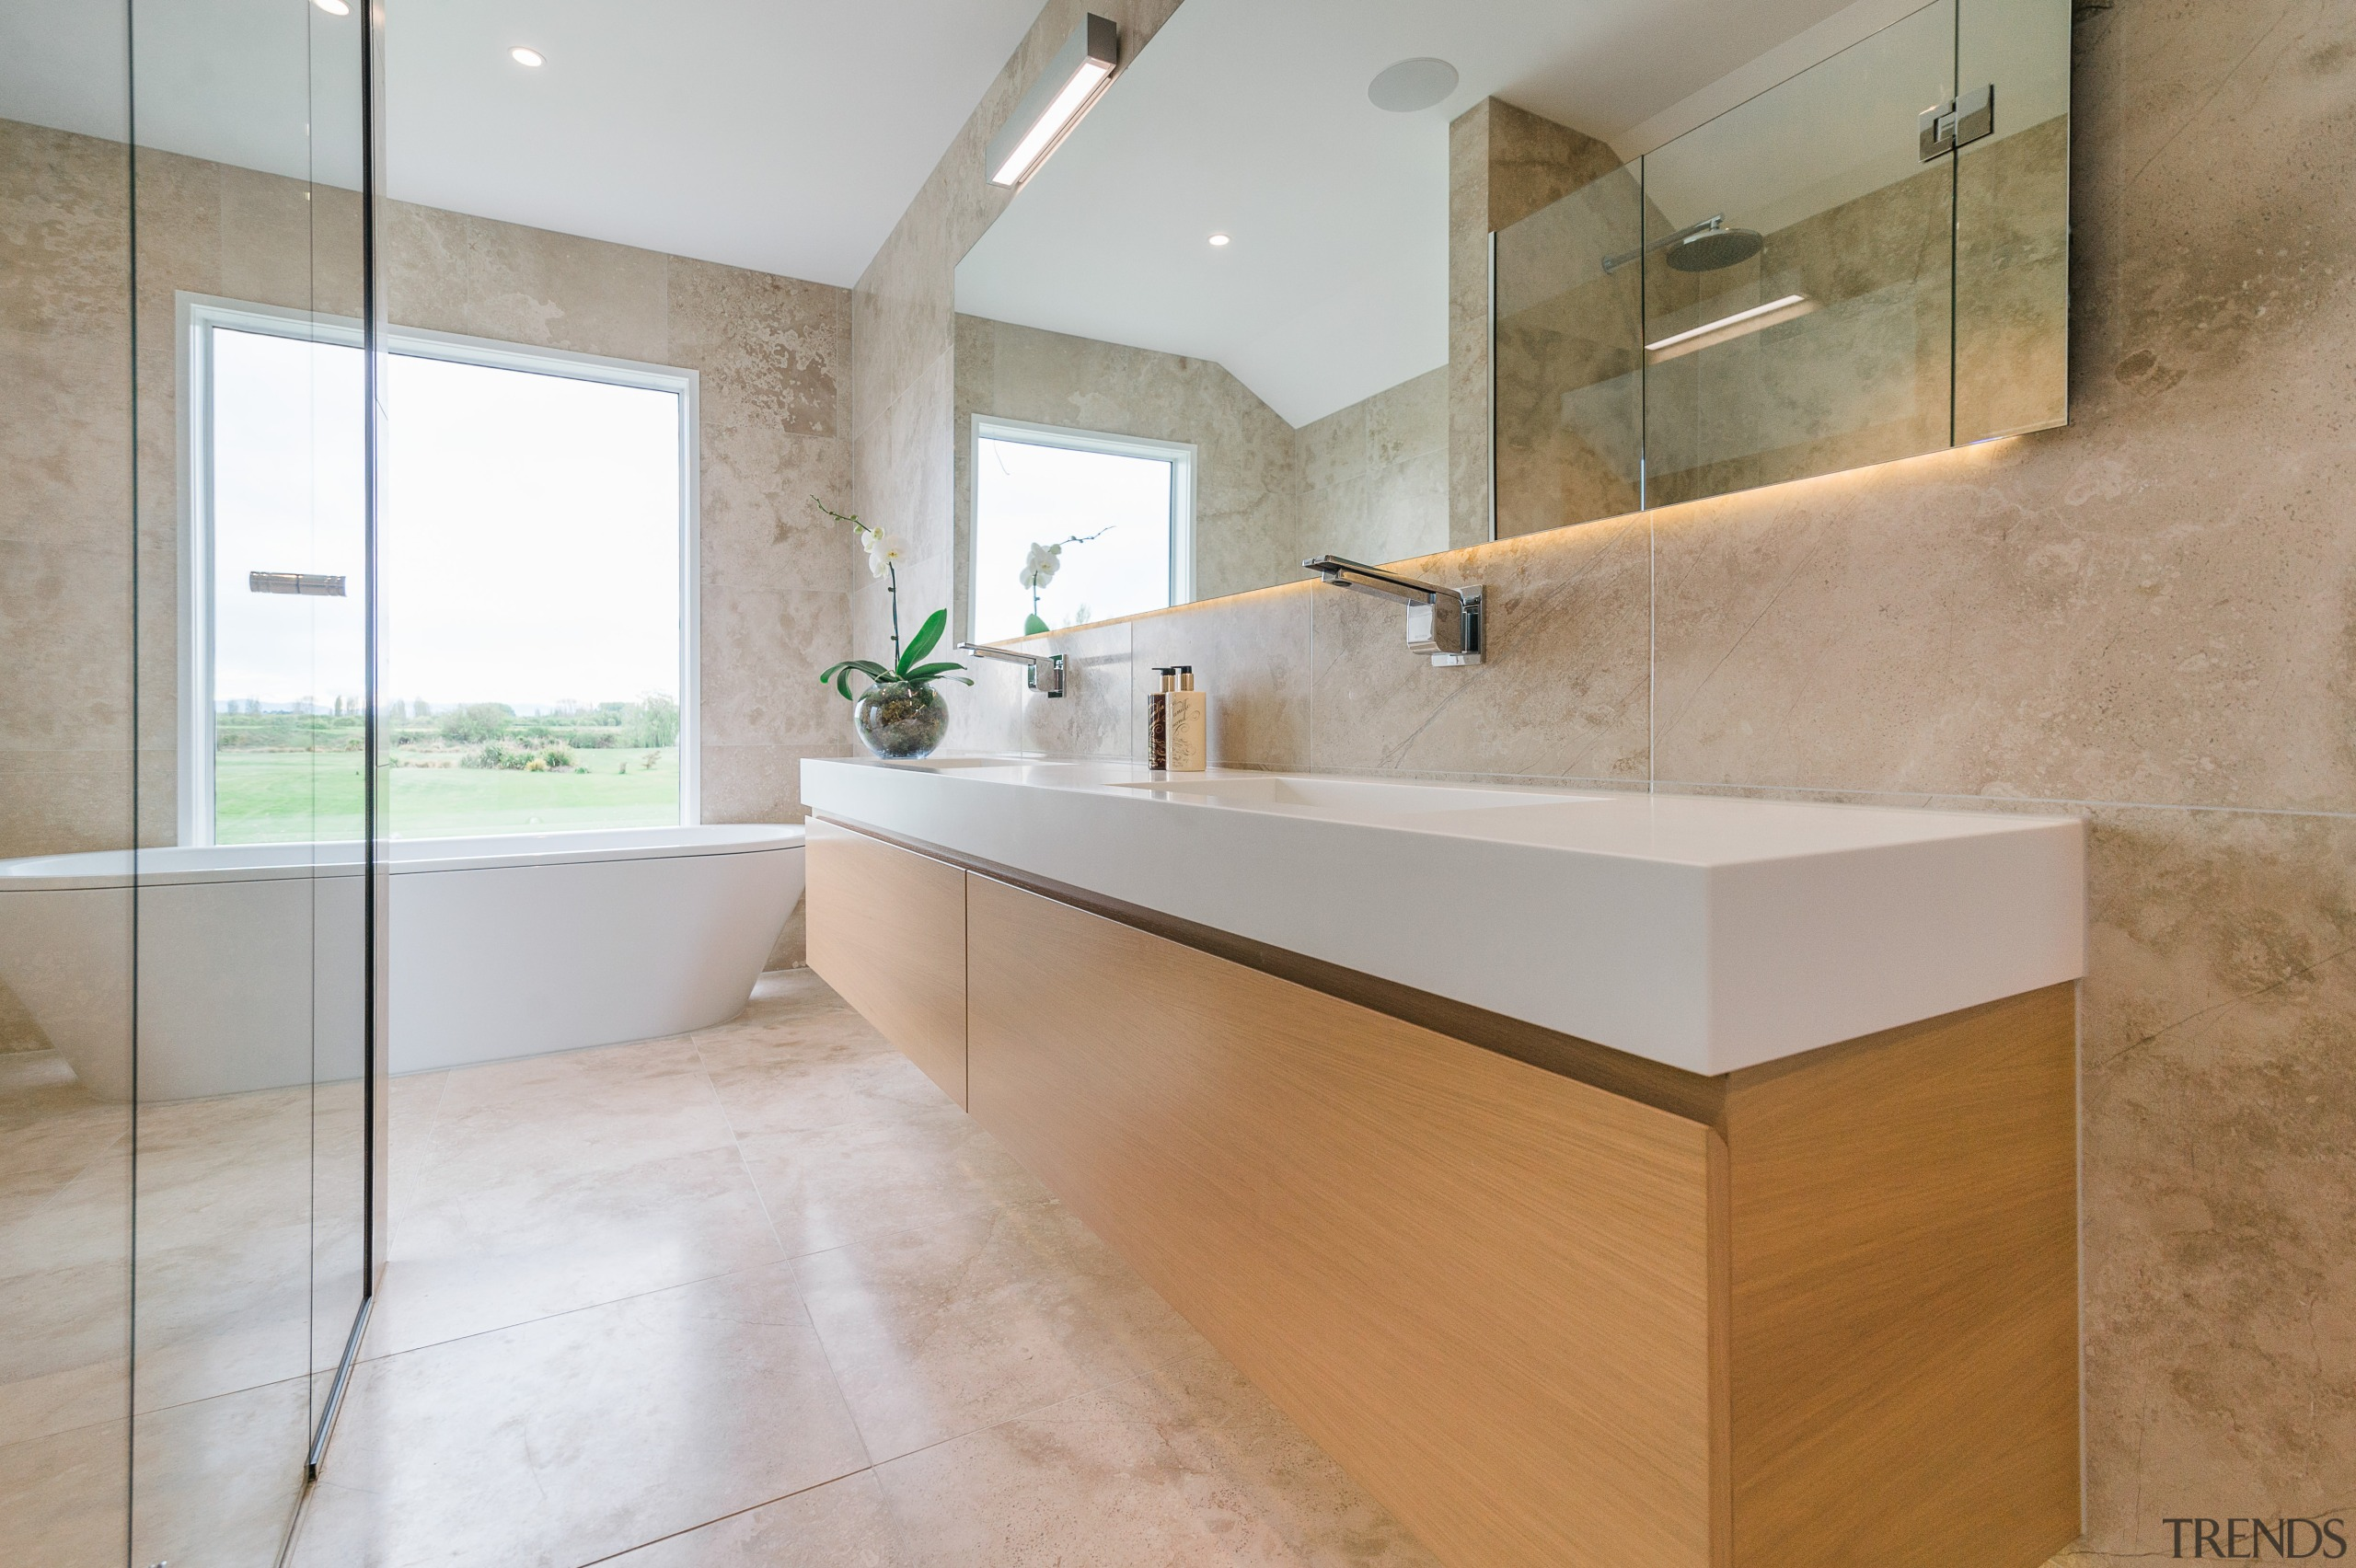 Vanity, glass-fronted shower stall, and the long wall architecture, bathroom, countertop, floor, flooring, home, interior design, real estate, room, sink, tile, gray